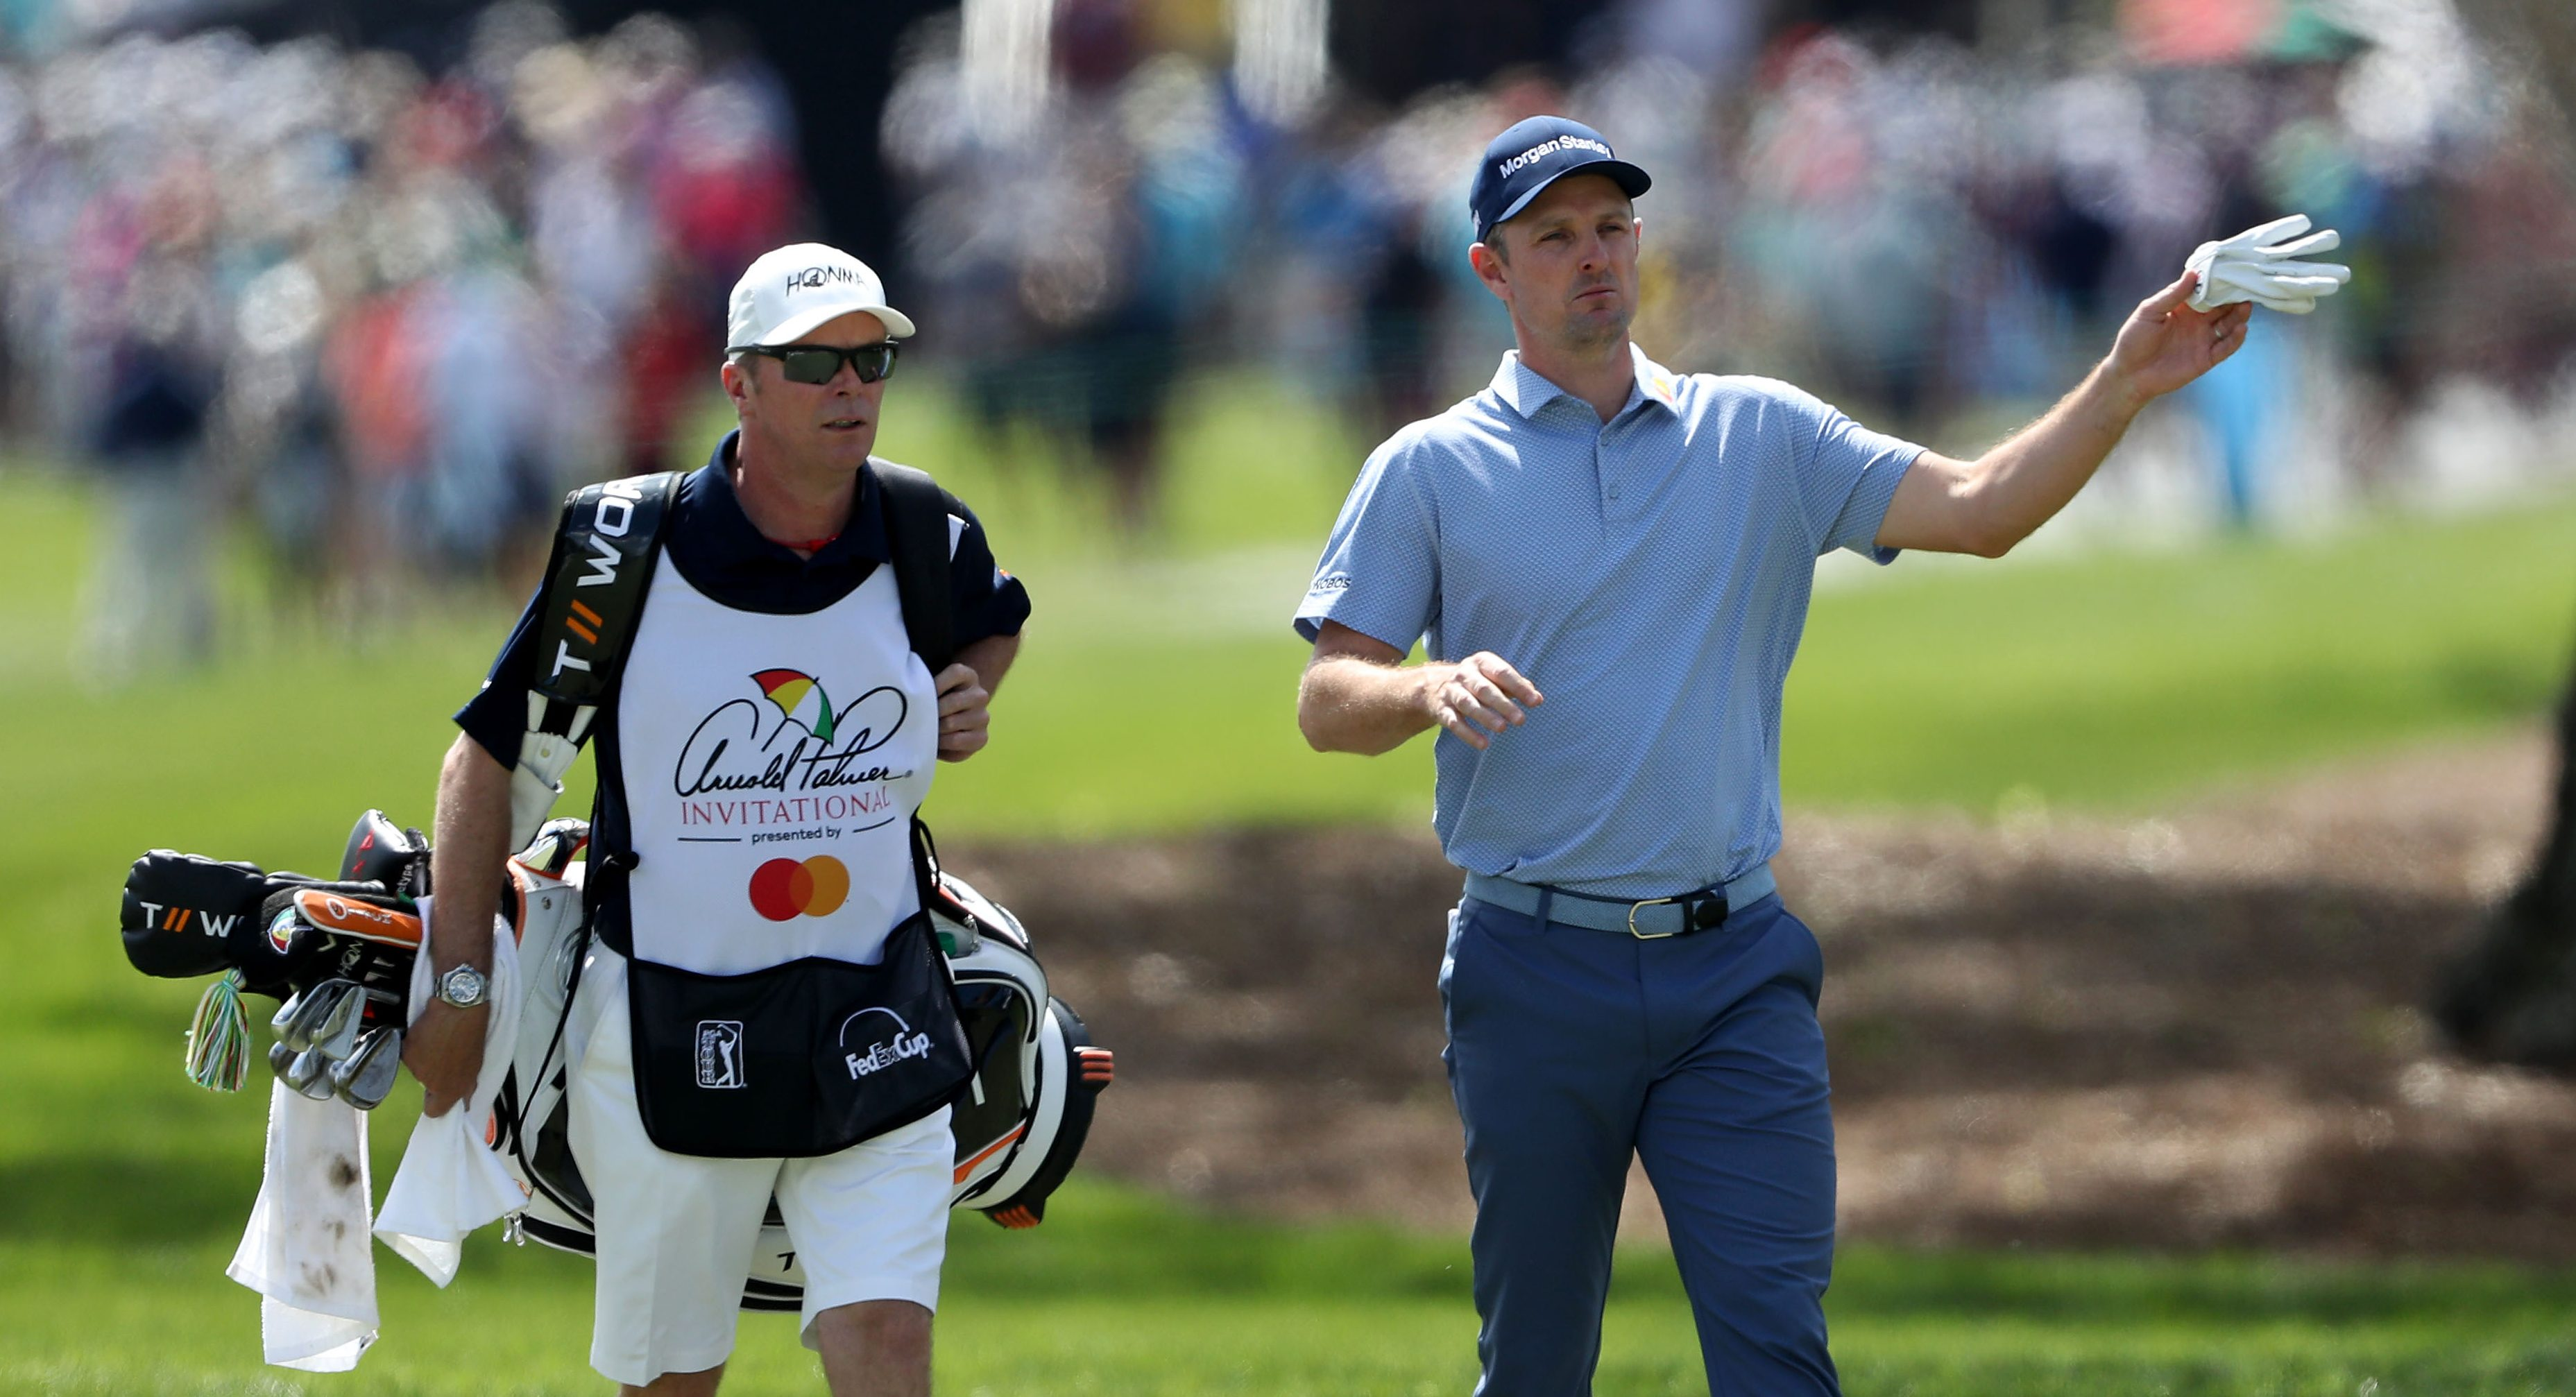 ORLANDO, FLORIDA - MARCH 08: Justin Rose of England walks to his second shot on the par 4, first hole with his caddie Gareth Lord during the second round of the 2019 Arnold Palmer Invitational presented by MasterCard at the Bay Hill Club on March 08, 2019 in Orlando, Florida. (Photo by David Cannon/Getty Images)